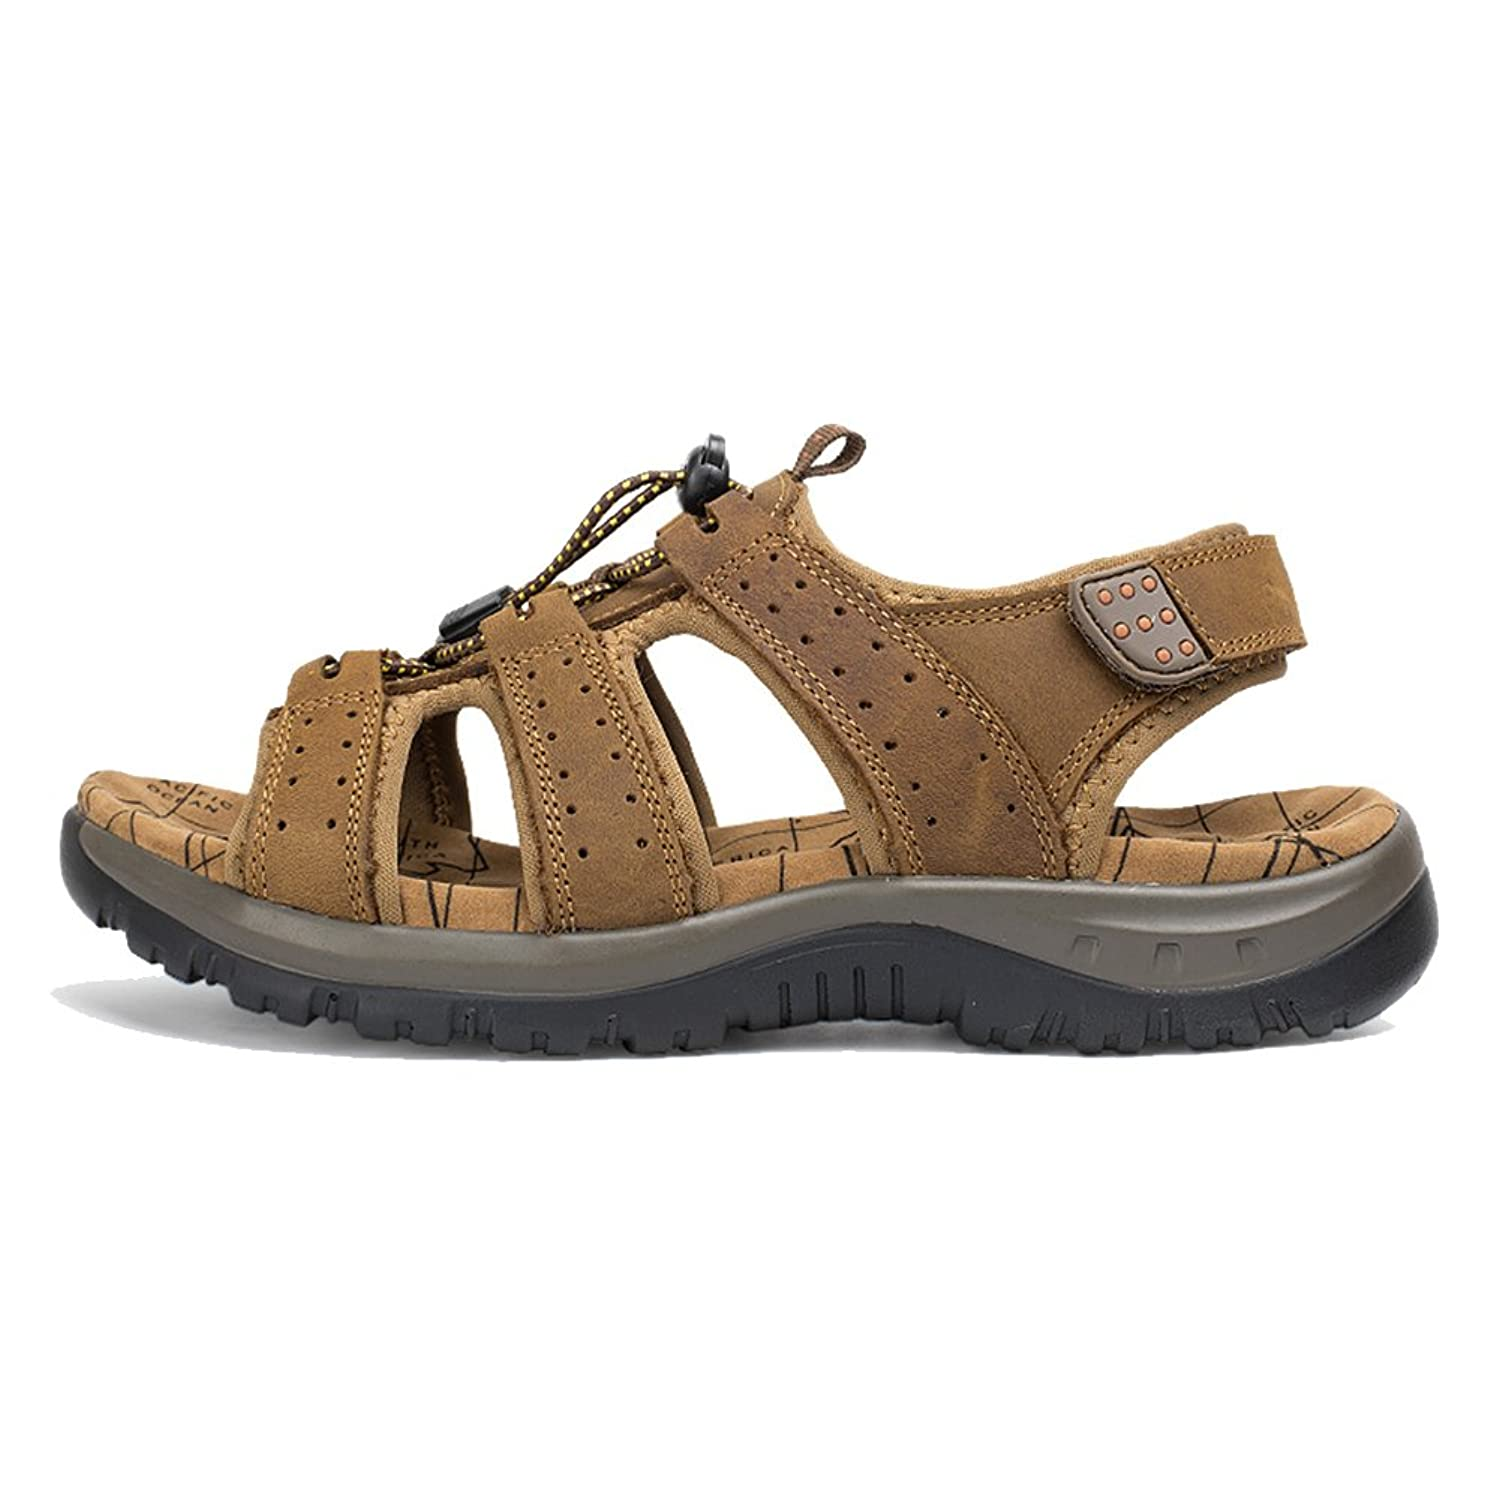 Agowoo Women's Lace Up Hook and Loop Beach Hiking Sandals